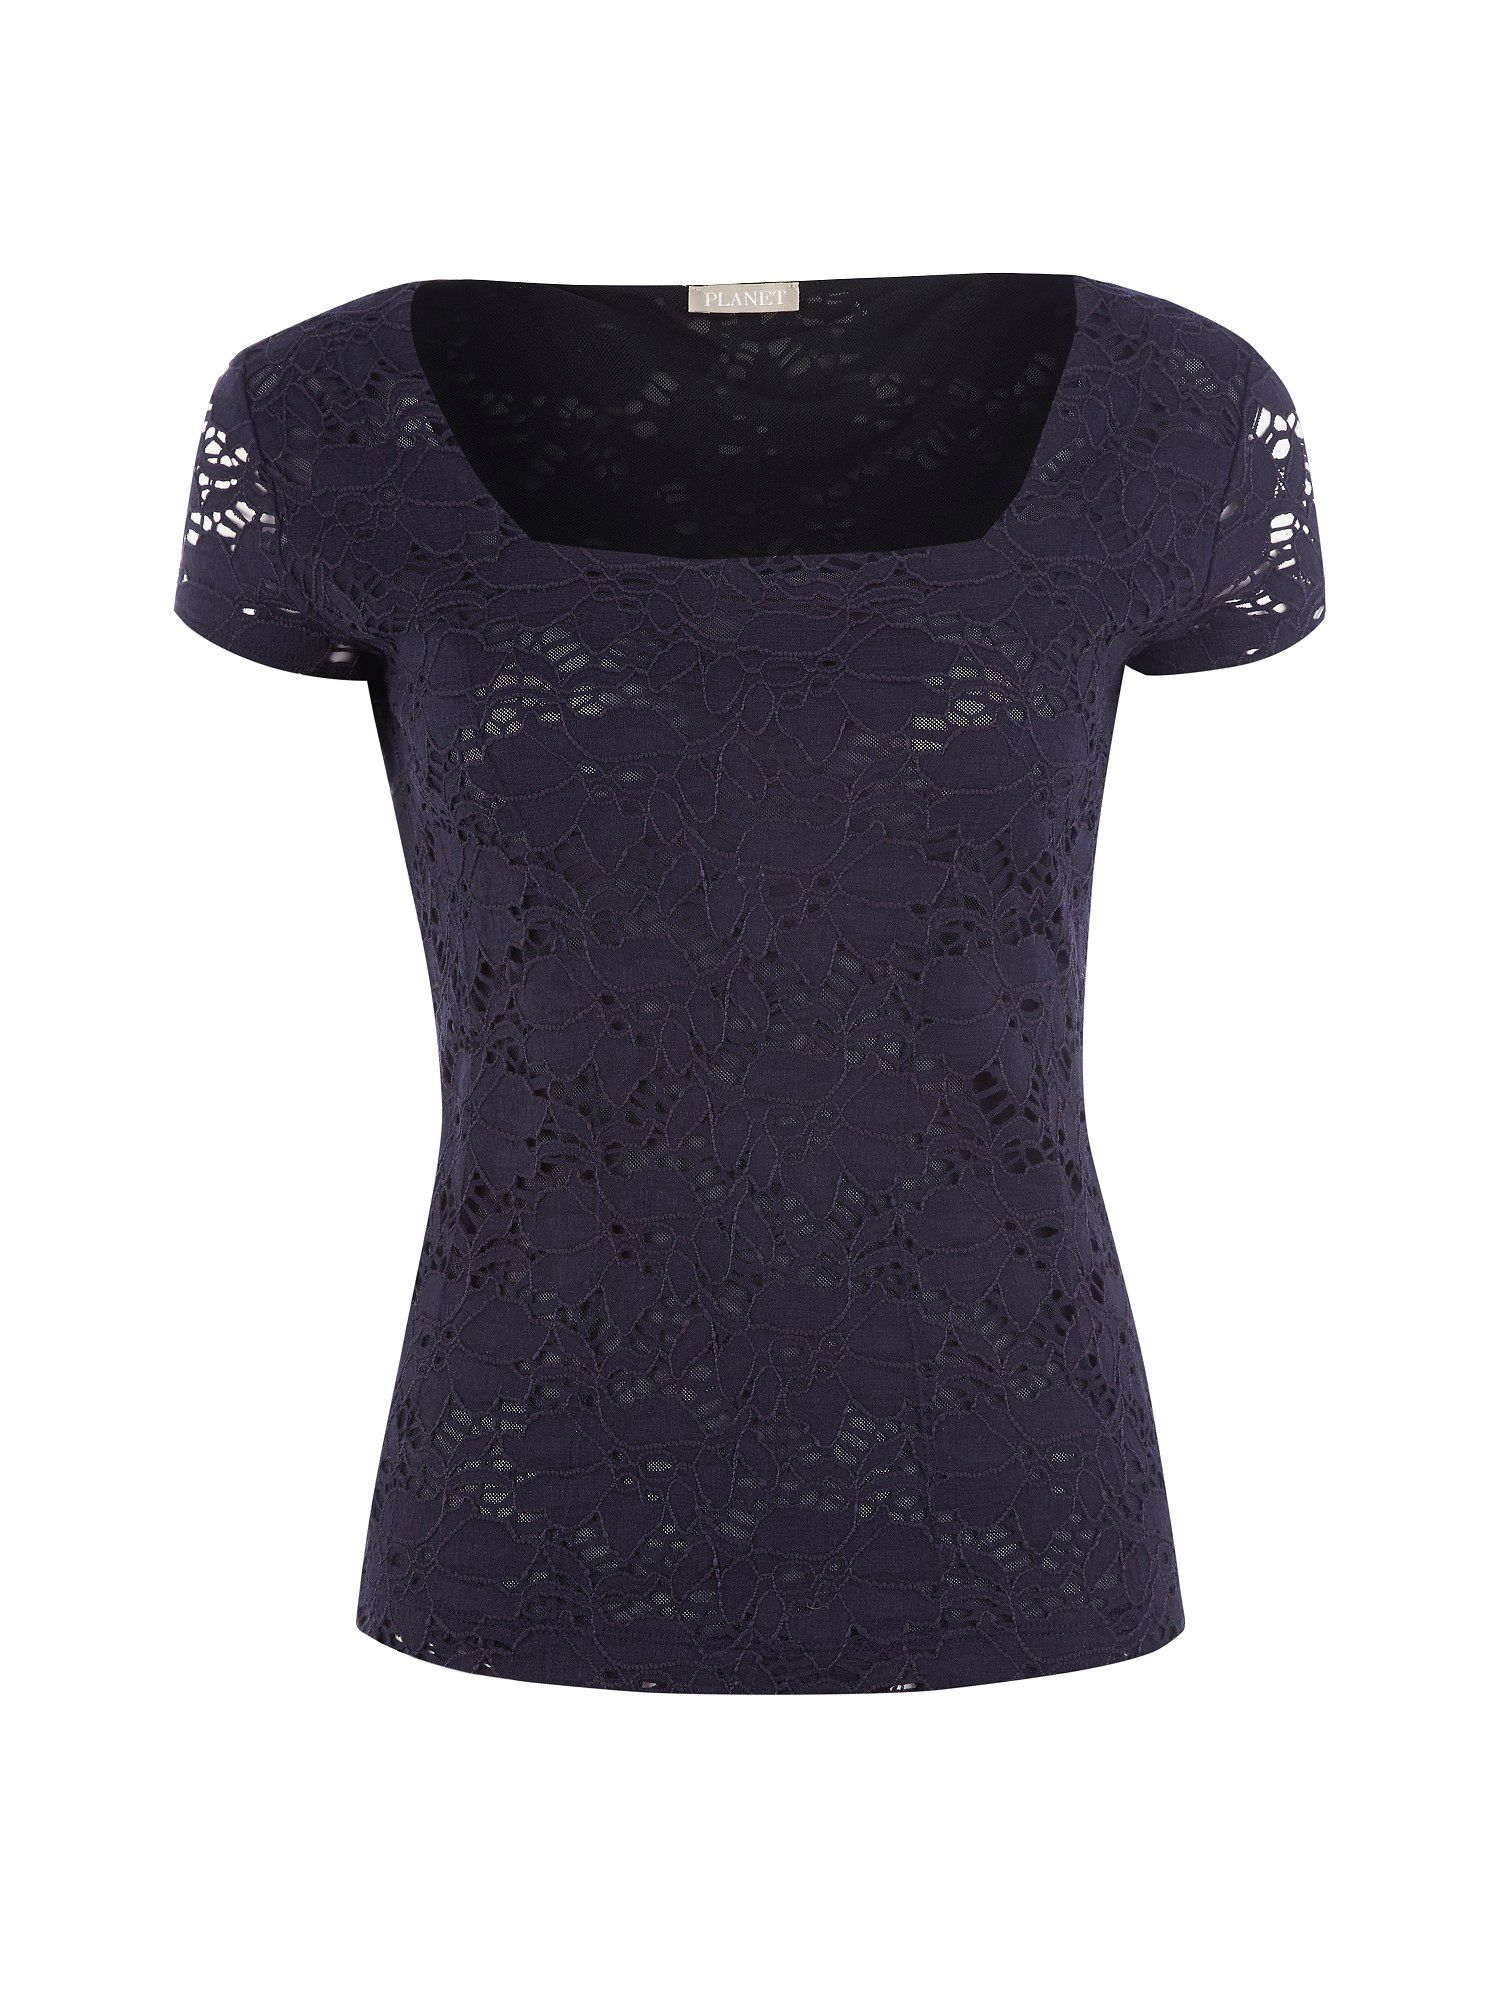 Navy lace jersey top